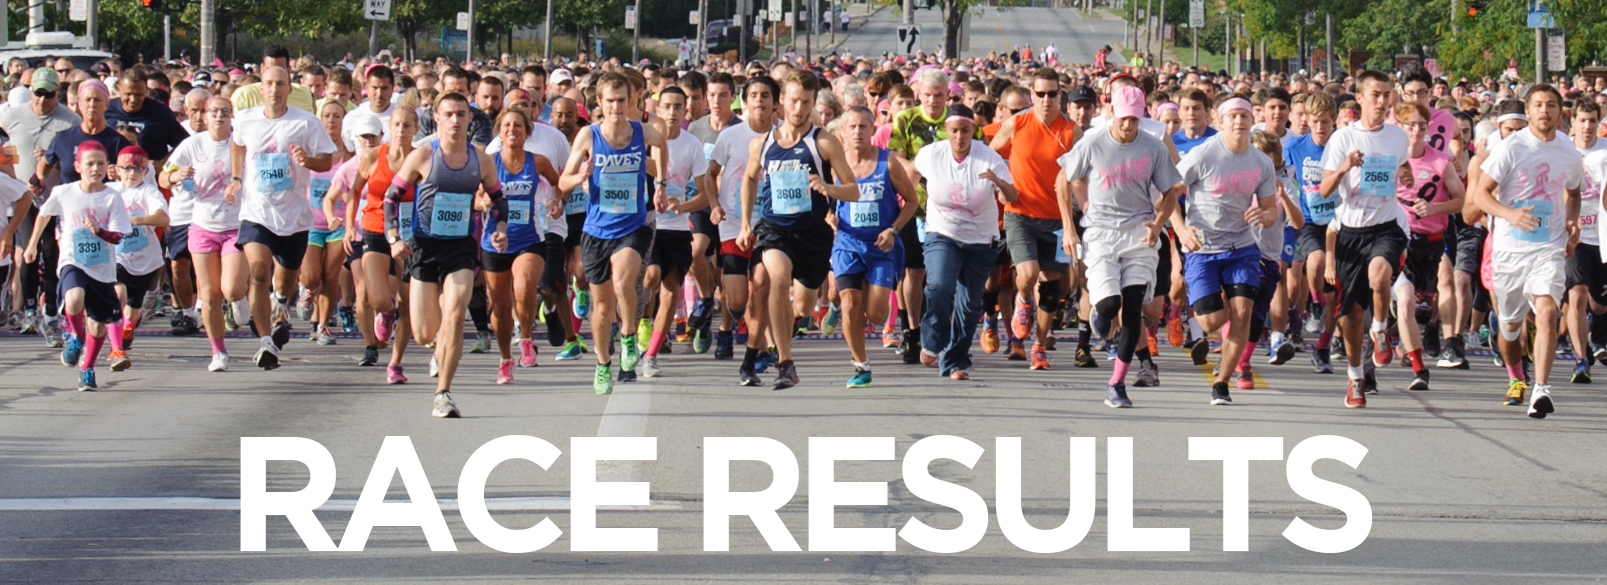 race-results-banner